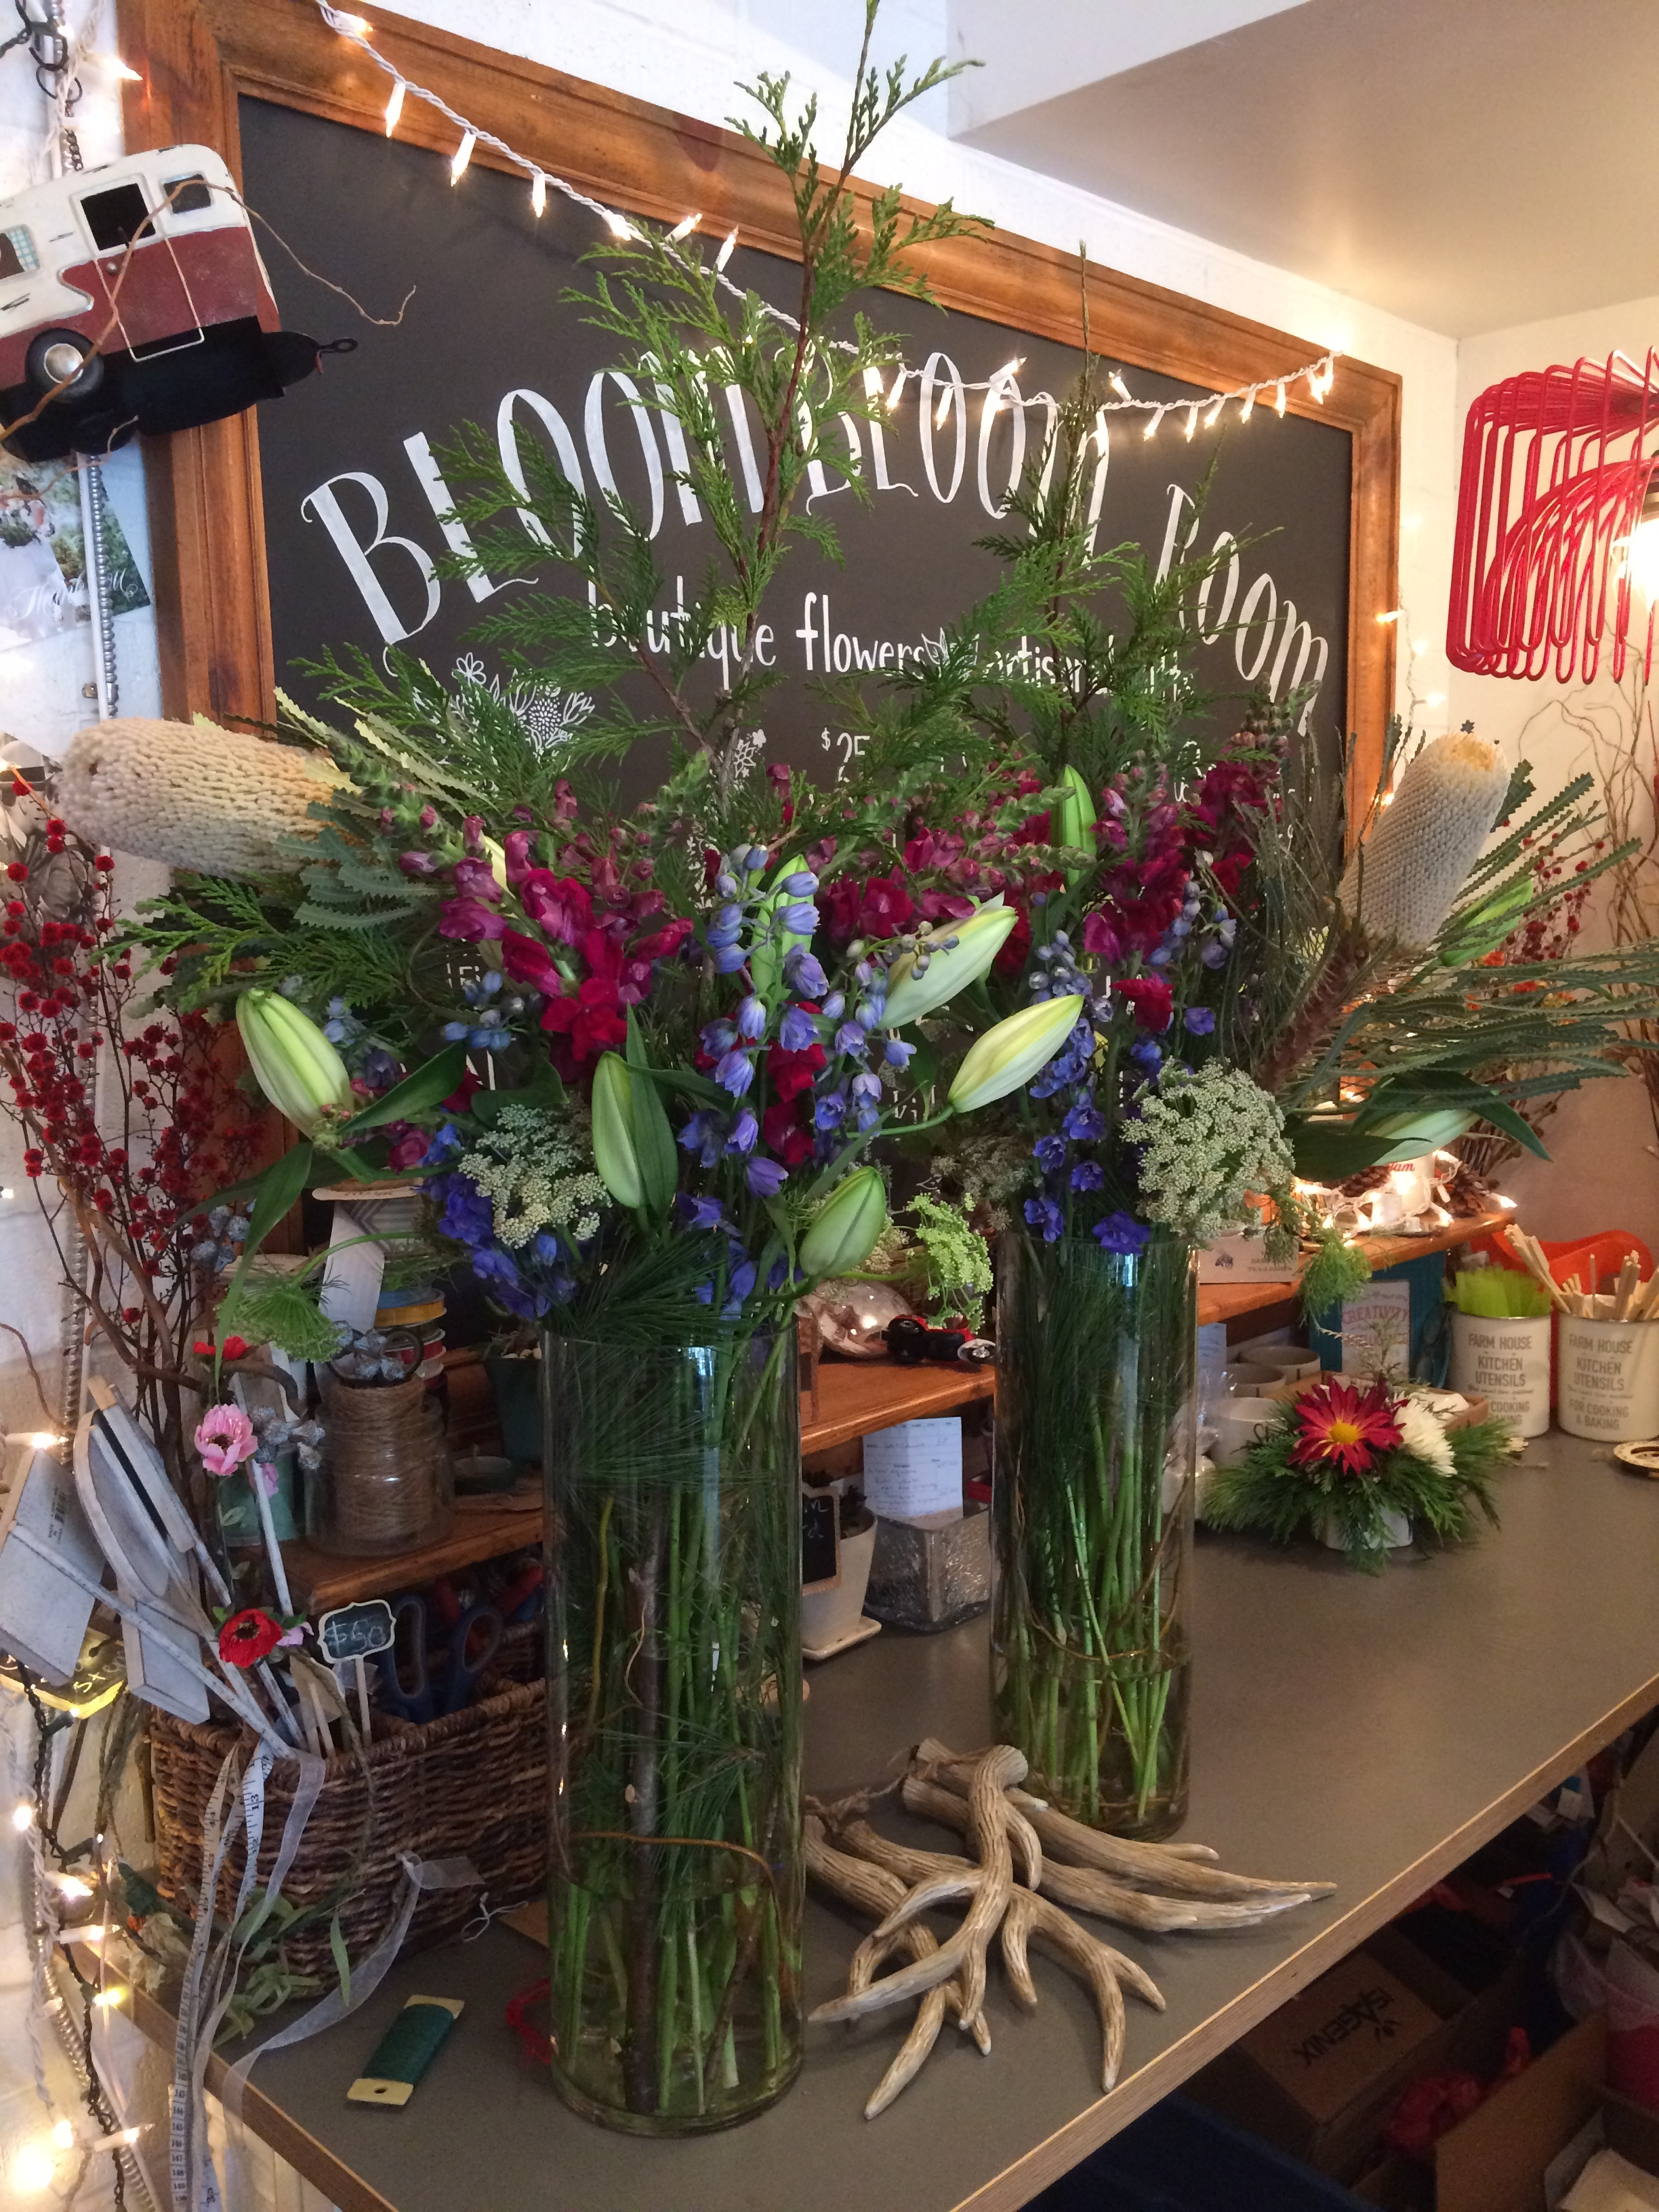 Online flower boutique located in a private warehouse in New West - order flowers online for New Westminster and Metro Vancouver.